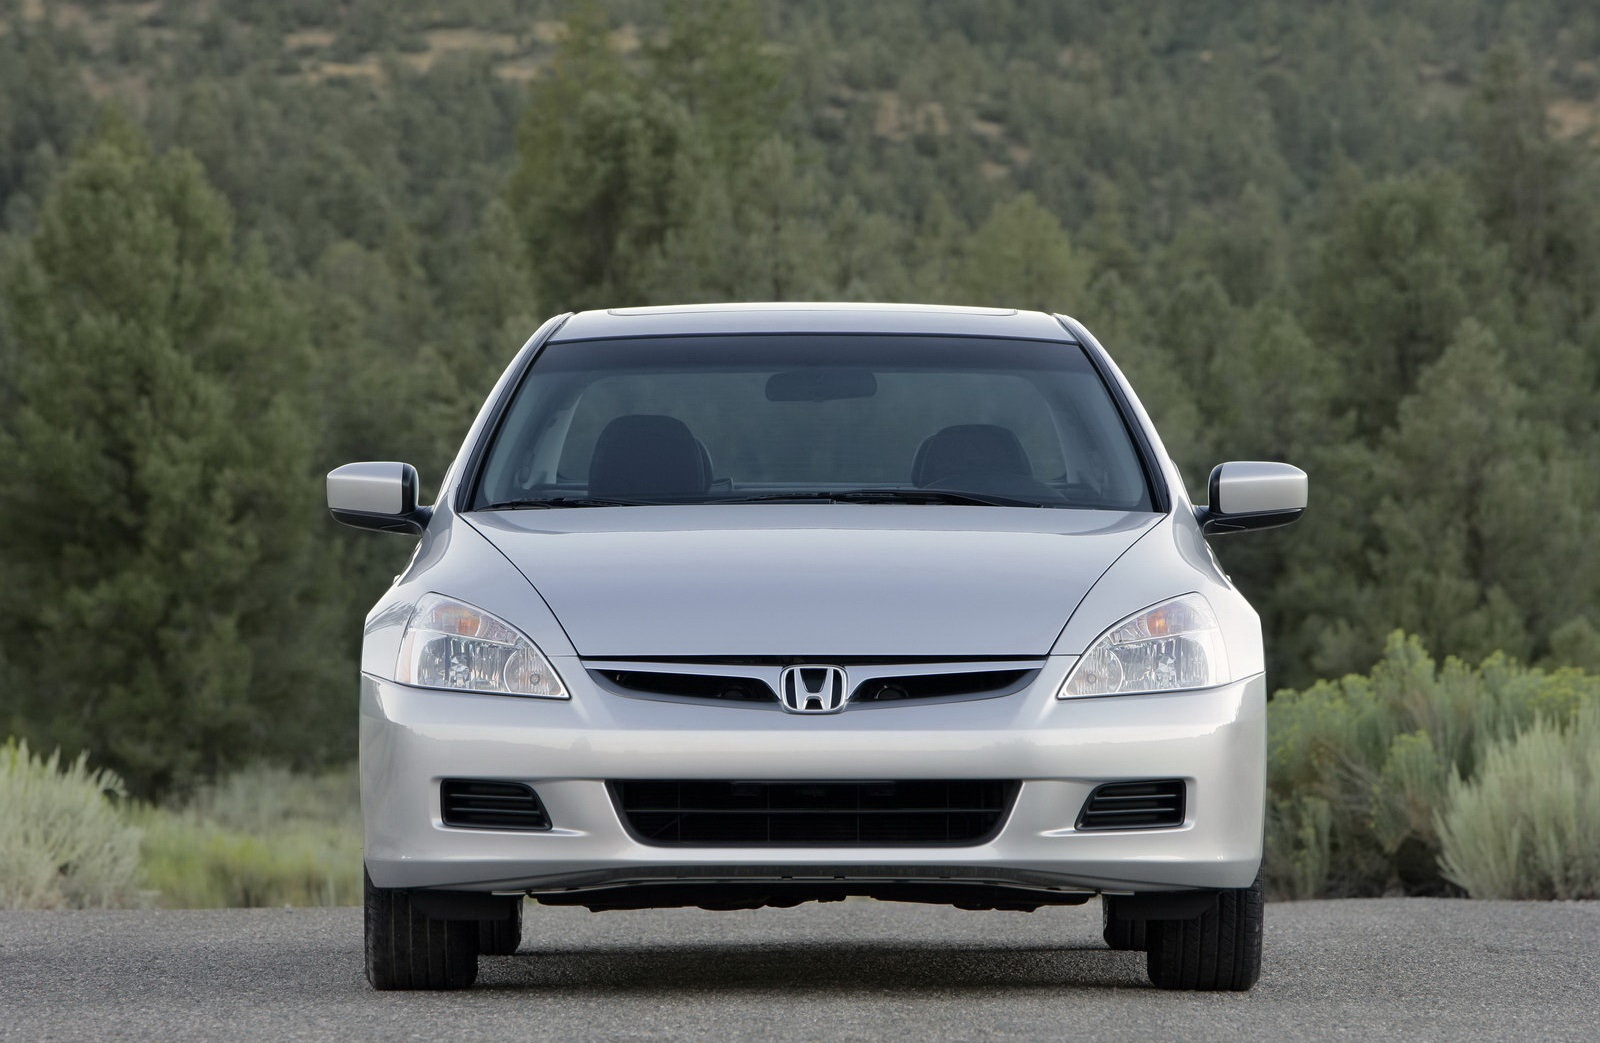 honda accord 2002 2006 prices in pakistan pictures and. Black Bedroom Furniture Sets. Home Design Ideas